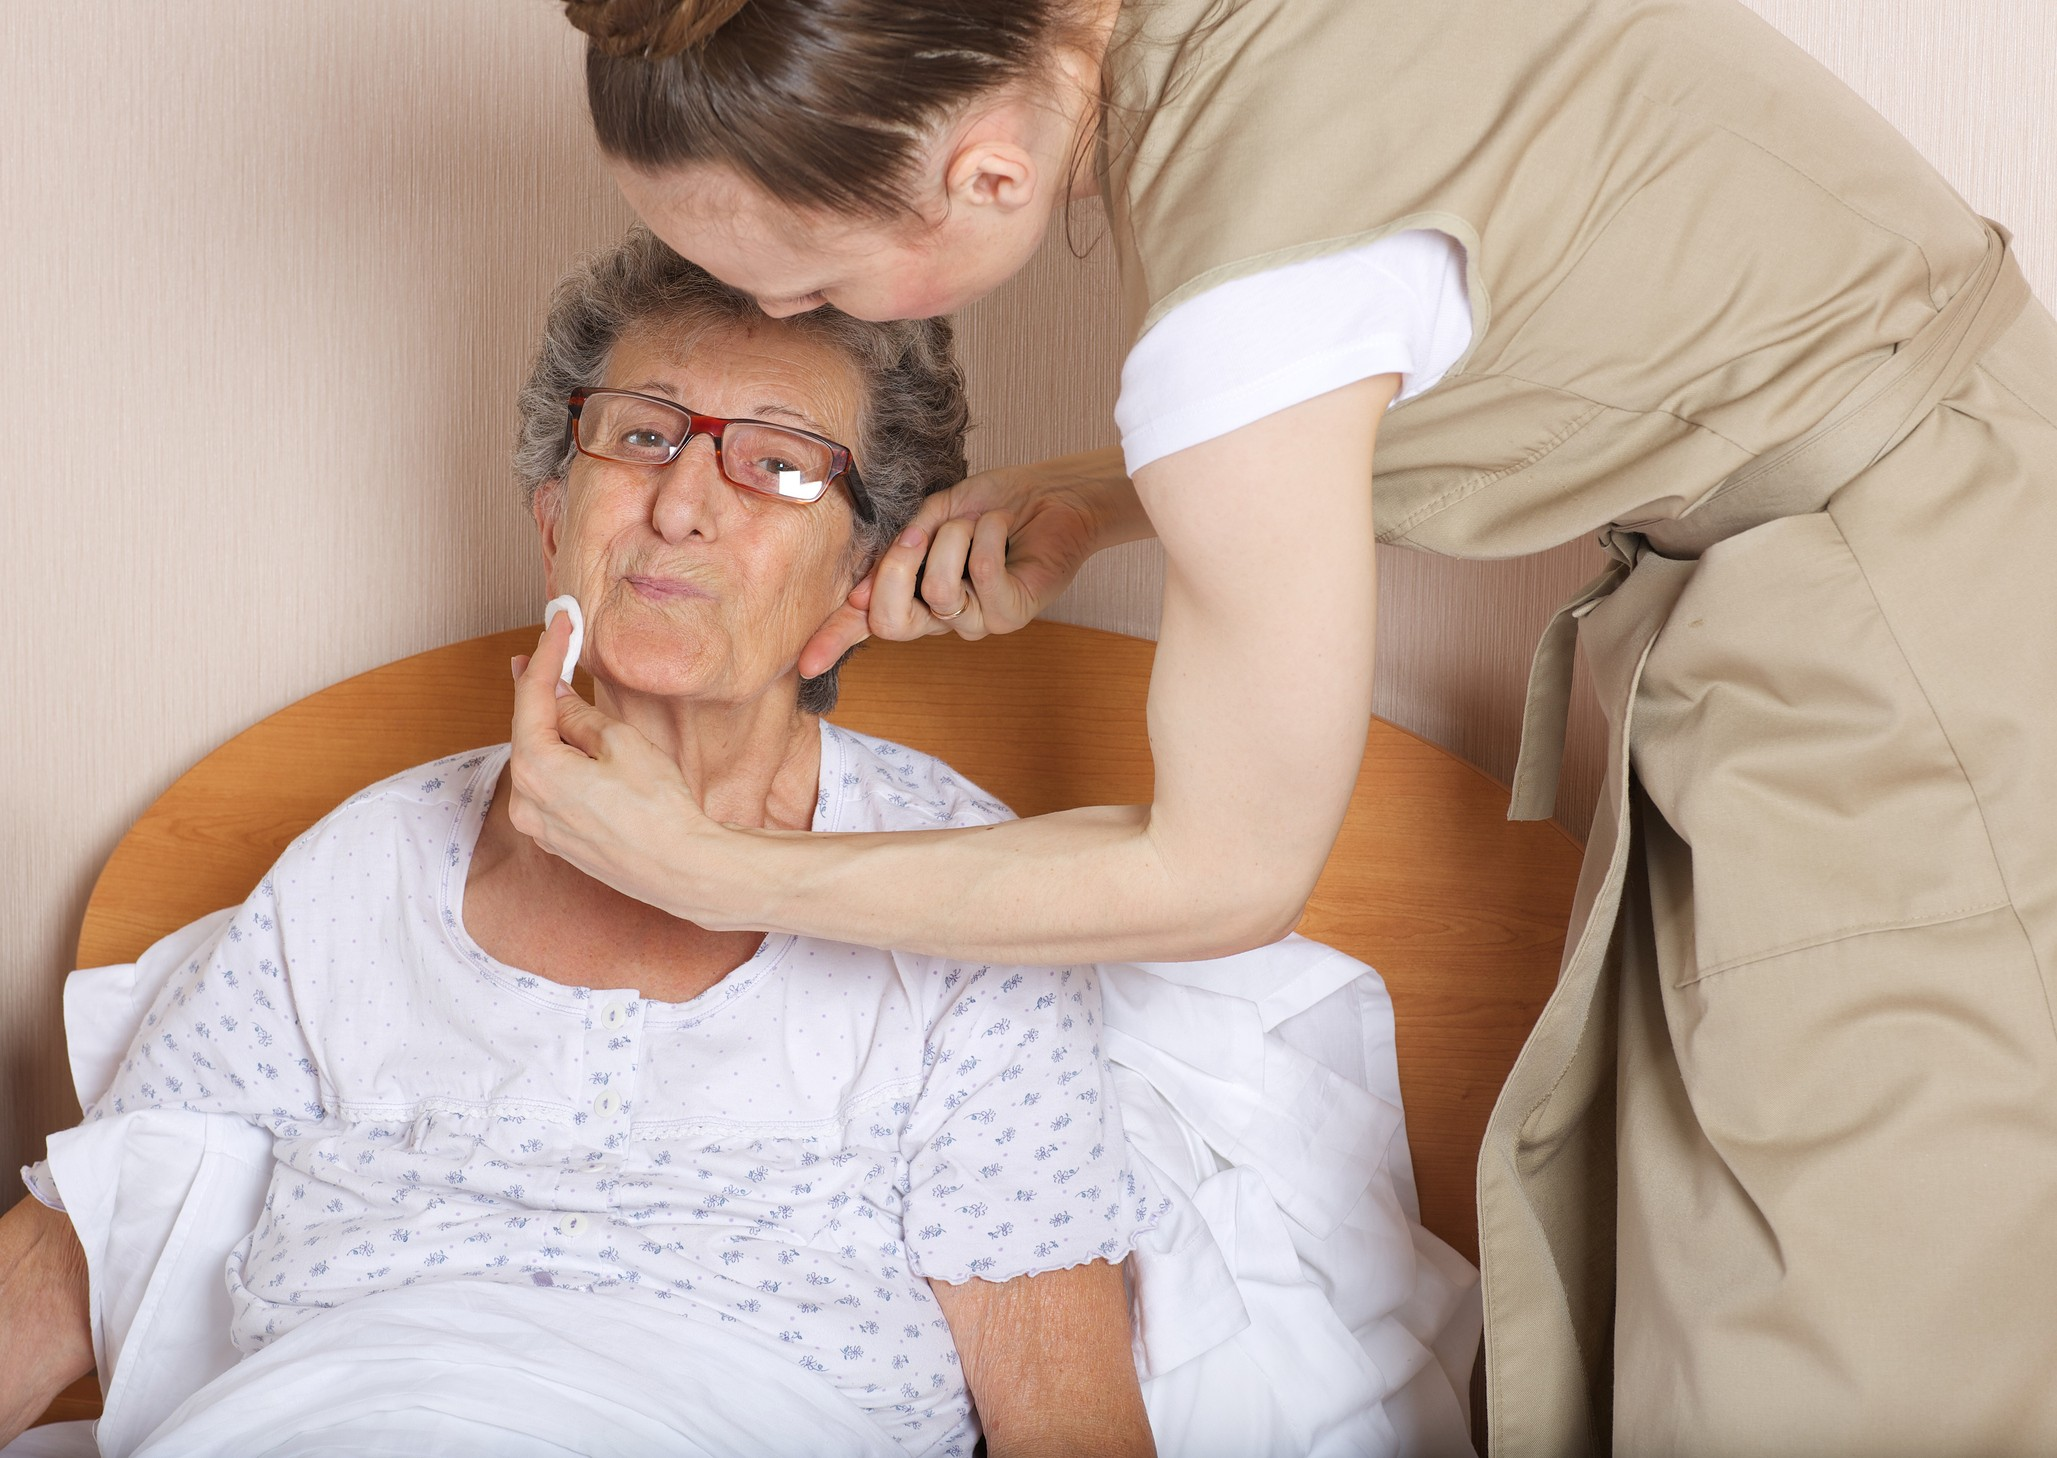 Young social work assistant takes care of a senior woman between 70 and 80 years old.